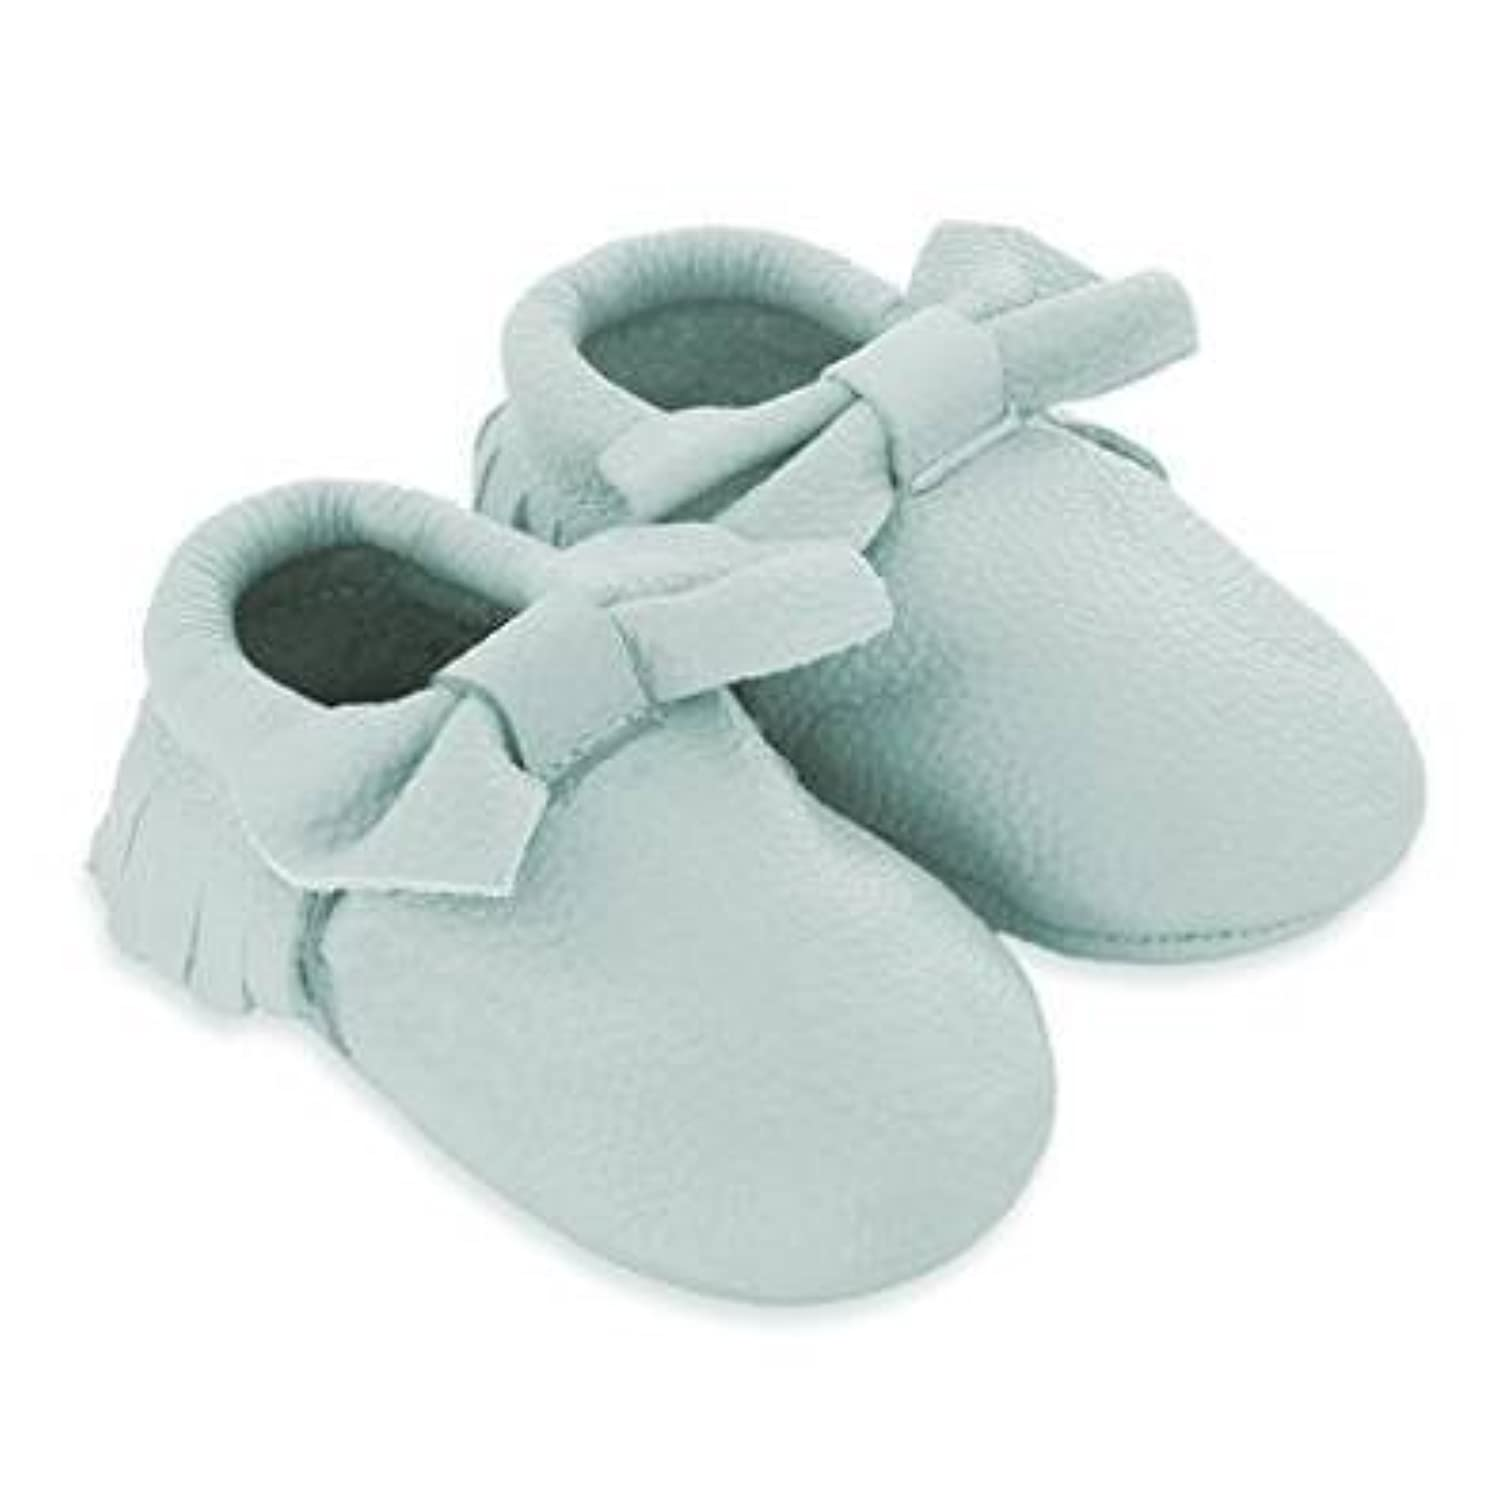 Mac and Lou Baby Bow Toddler Soft Sole Leather Moccasins Light Blue